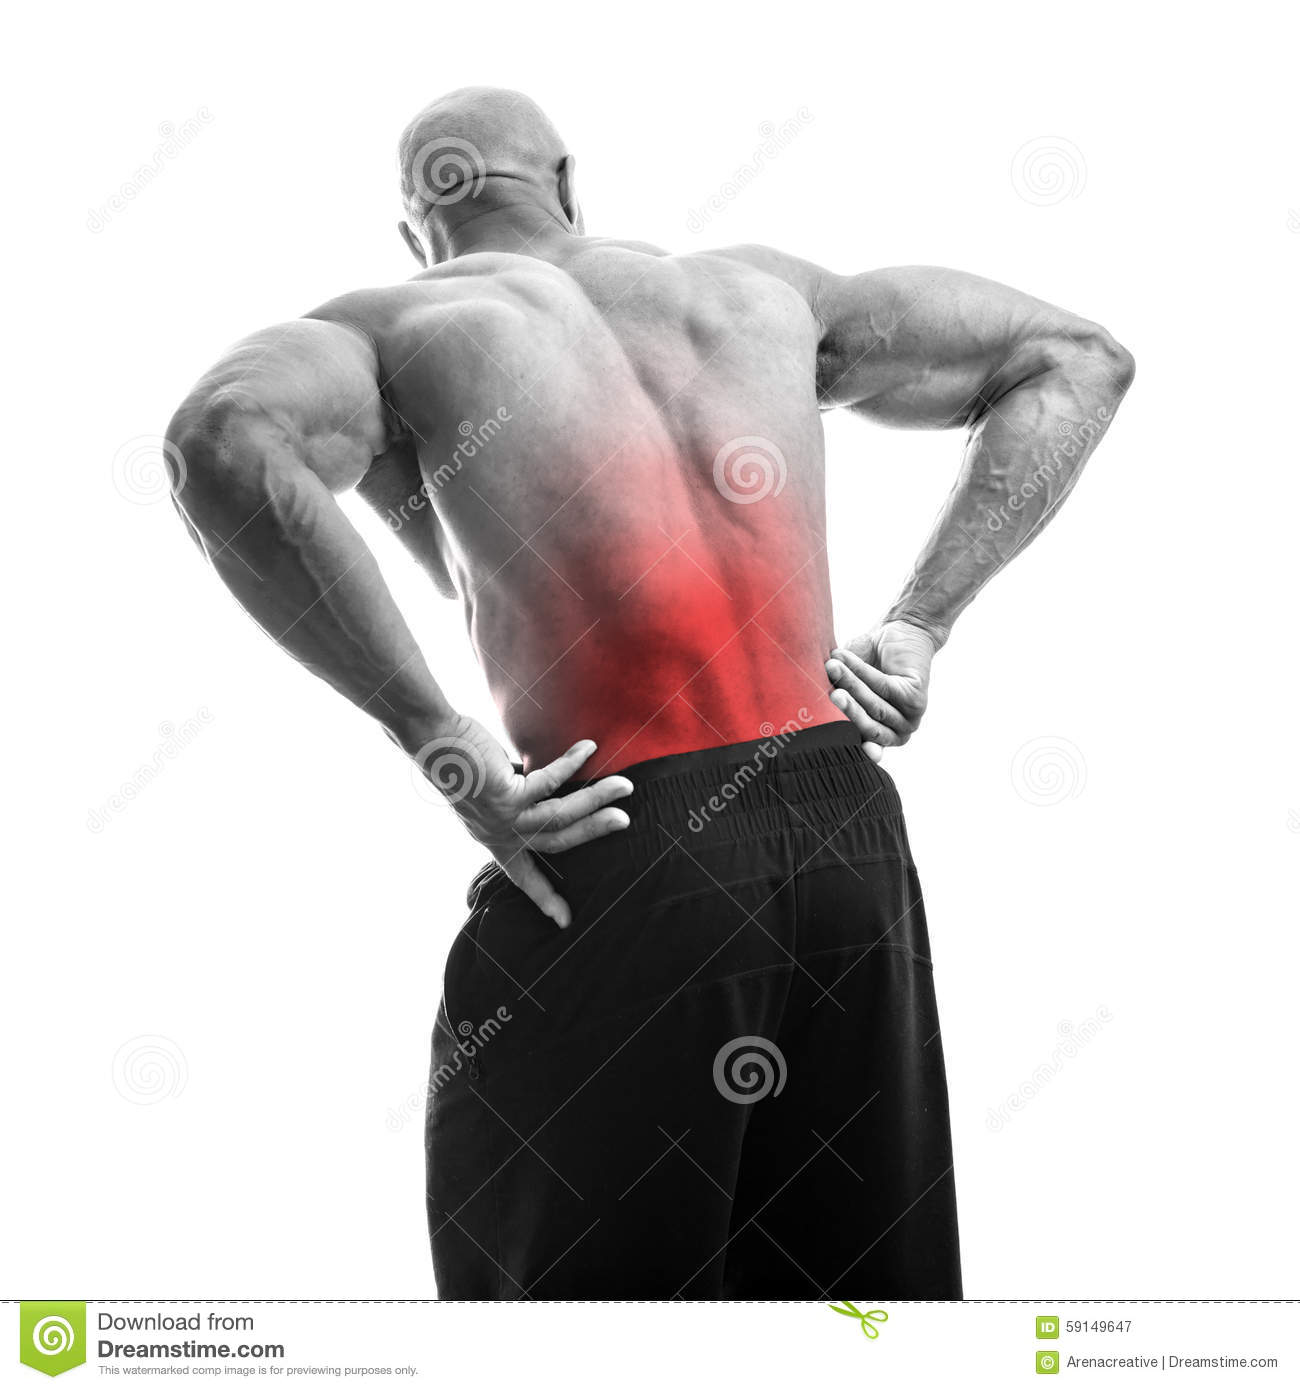 Low Back Pain Stock Image Image Of Pain Muscles Dude 59149647